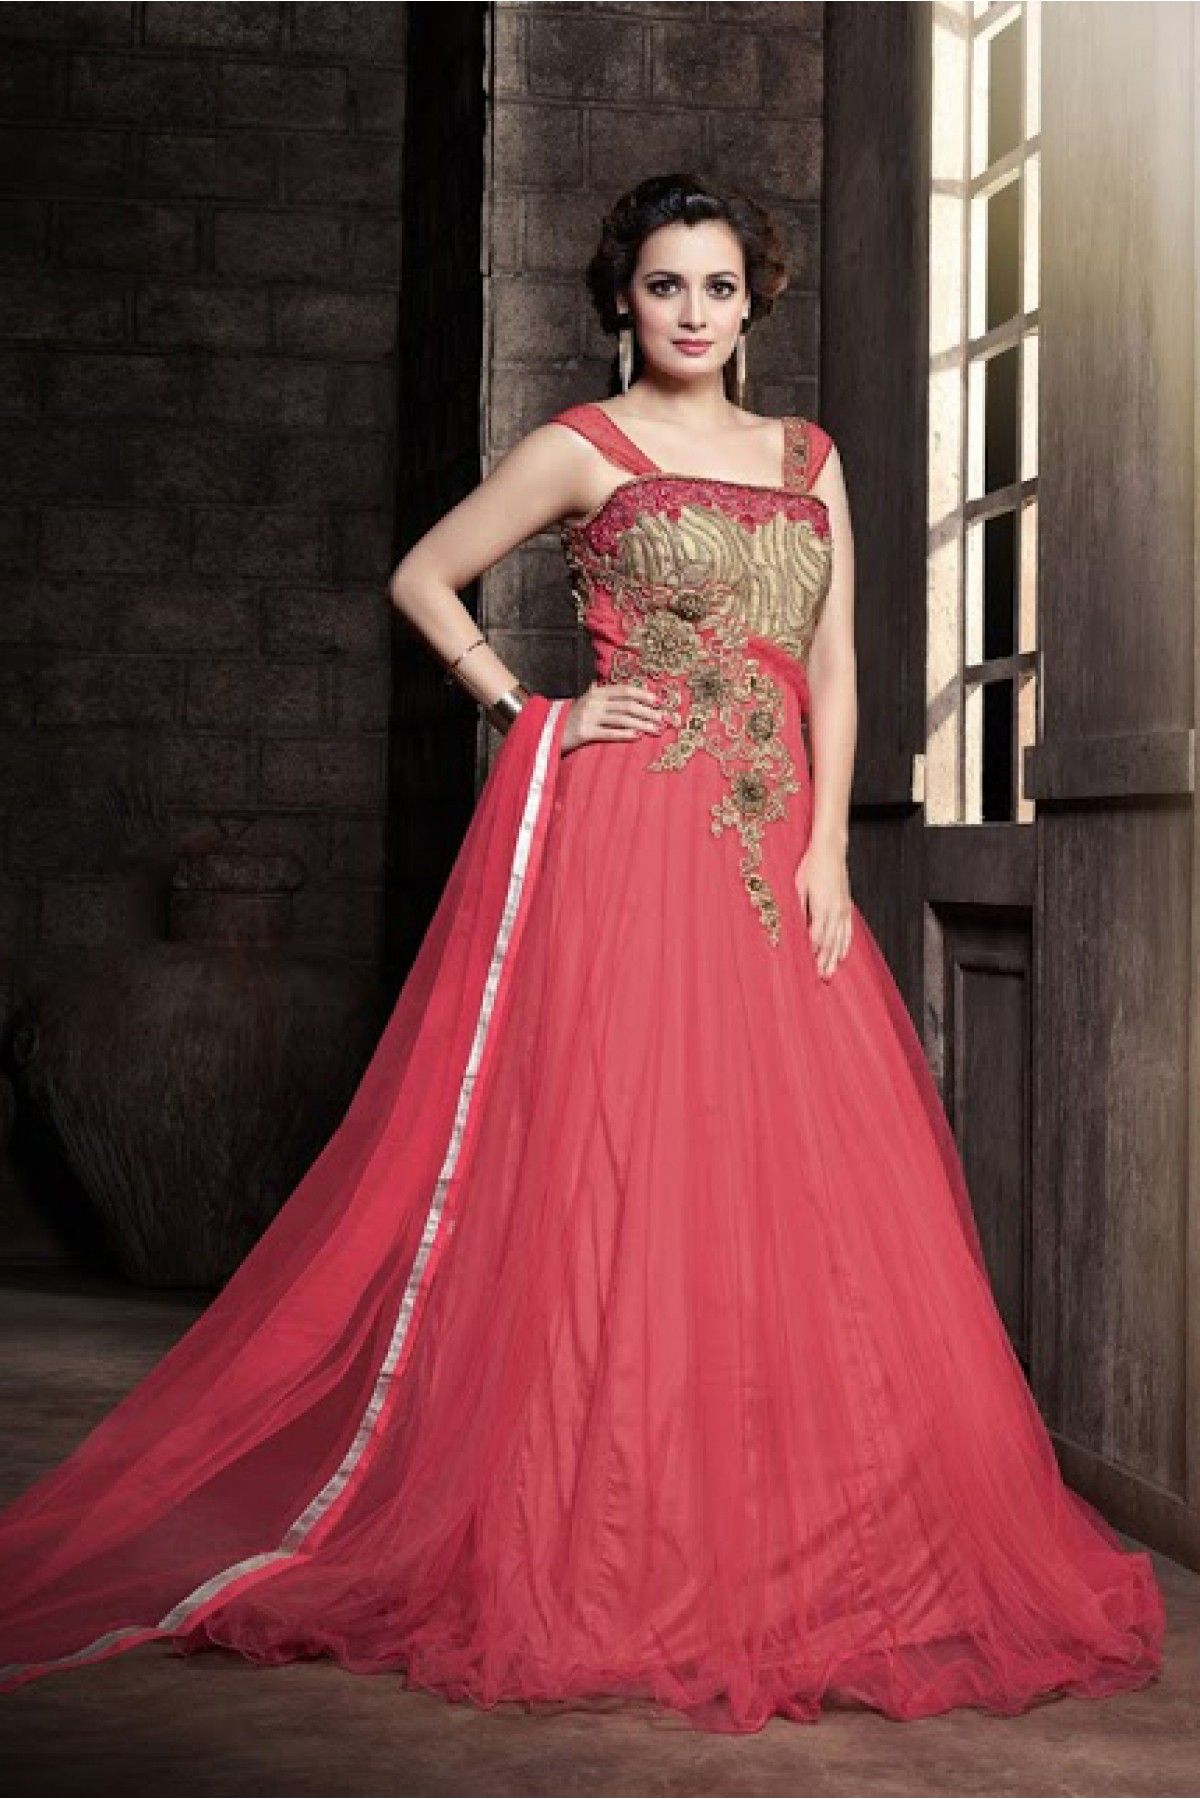 507d6cf08f Pink Colour Net Fabric Designer Semi Stitched Gown Comes With Matching  Dupatta. This Gown Is